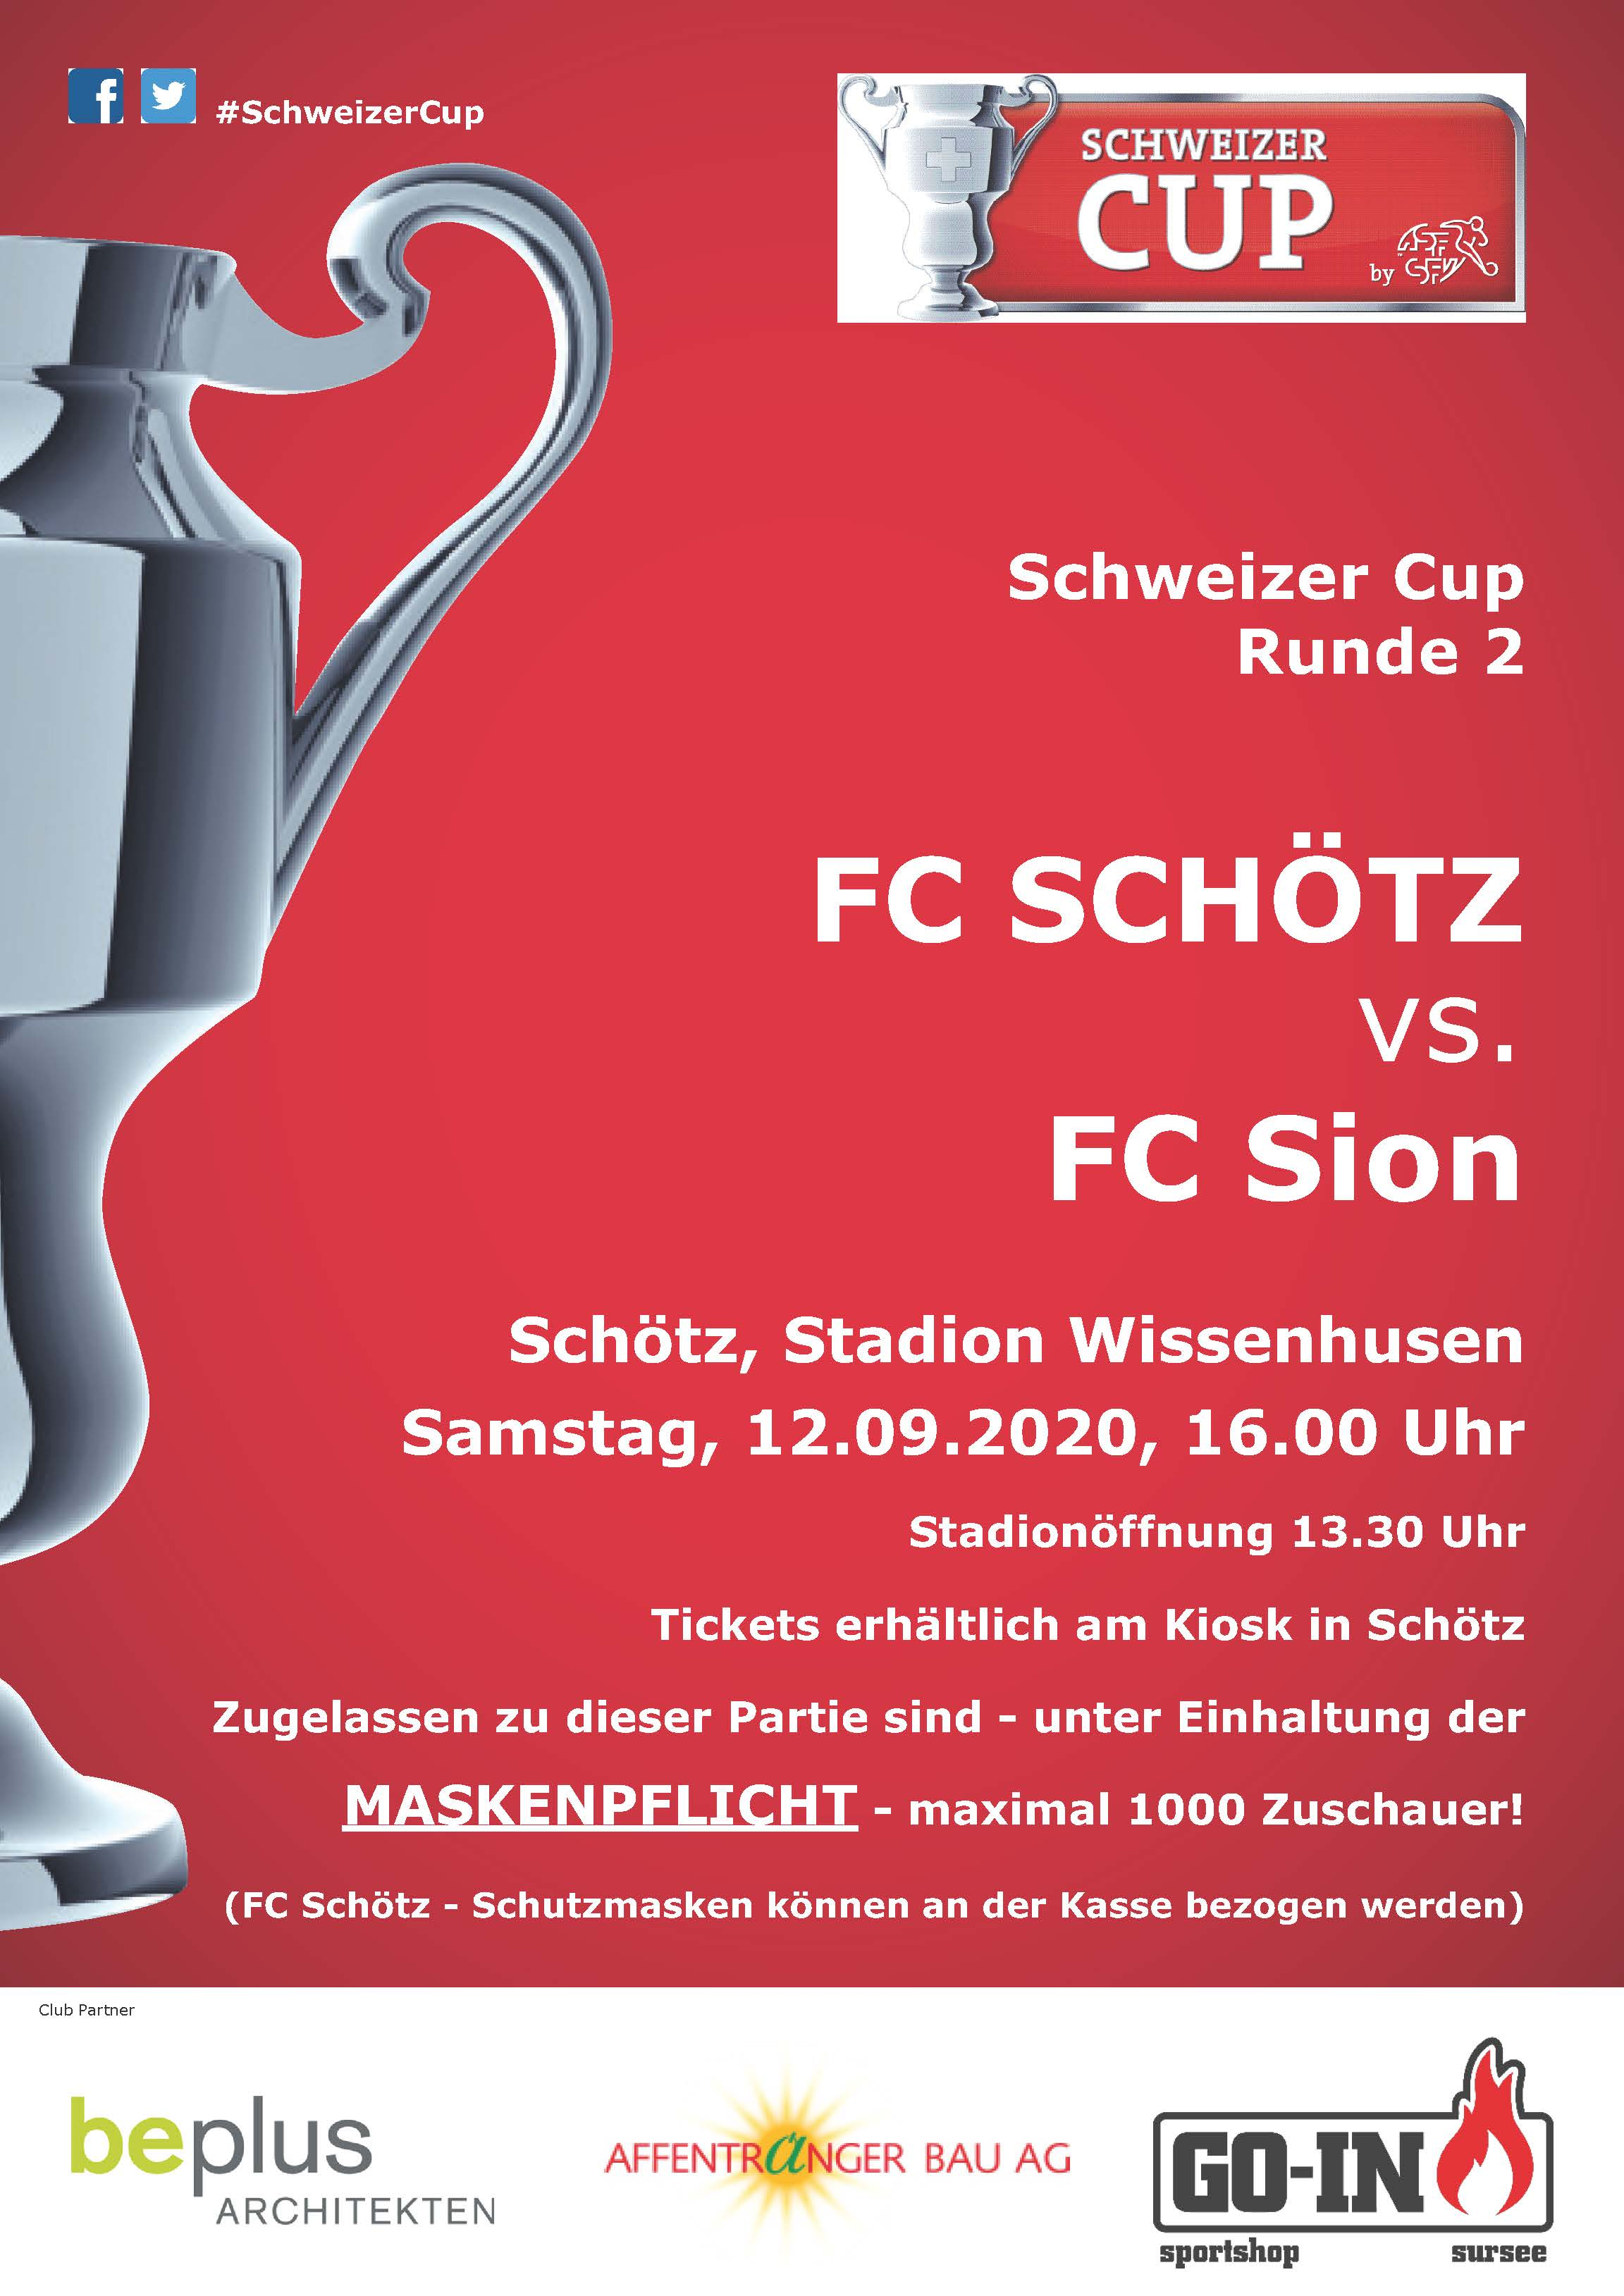 SC Matchposter A3 07 2020 FCS Sion 003